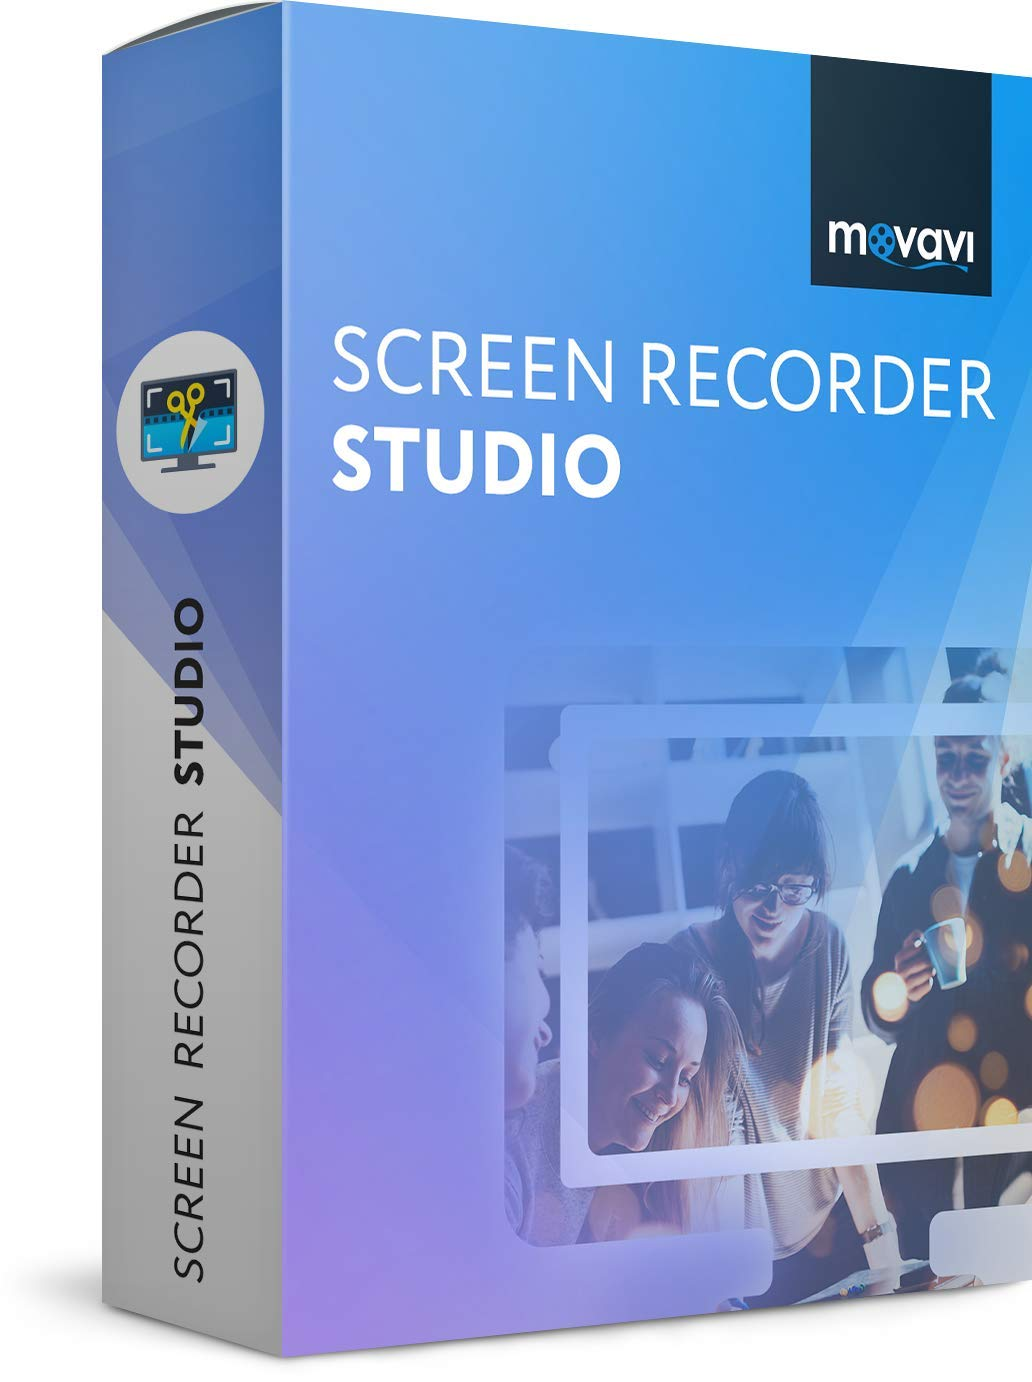 Screen Recorder Studio 10 Mac [Mac Download] by Movavi Software Inc